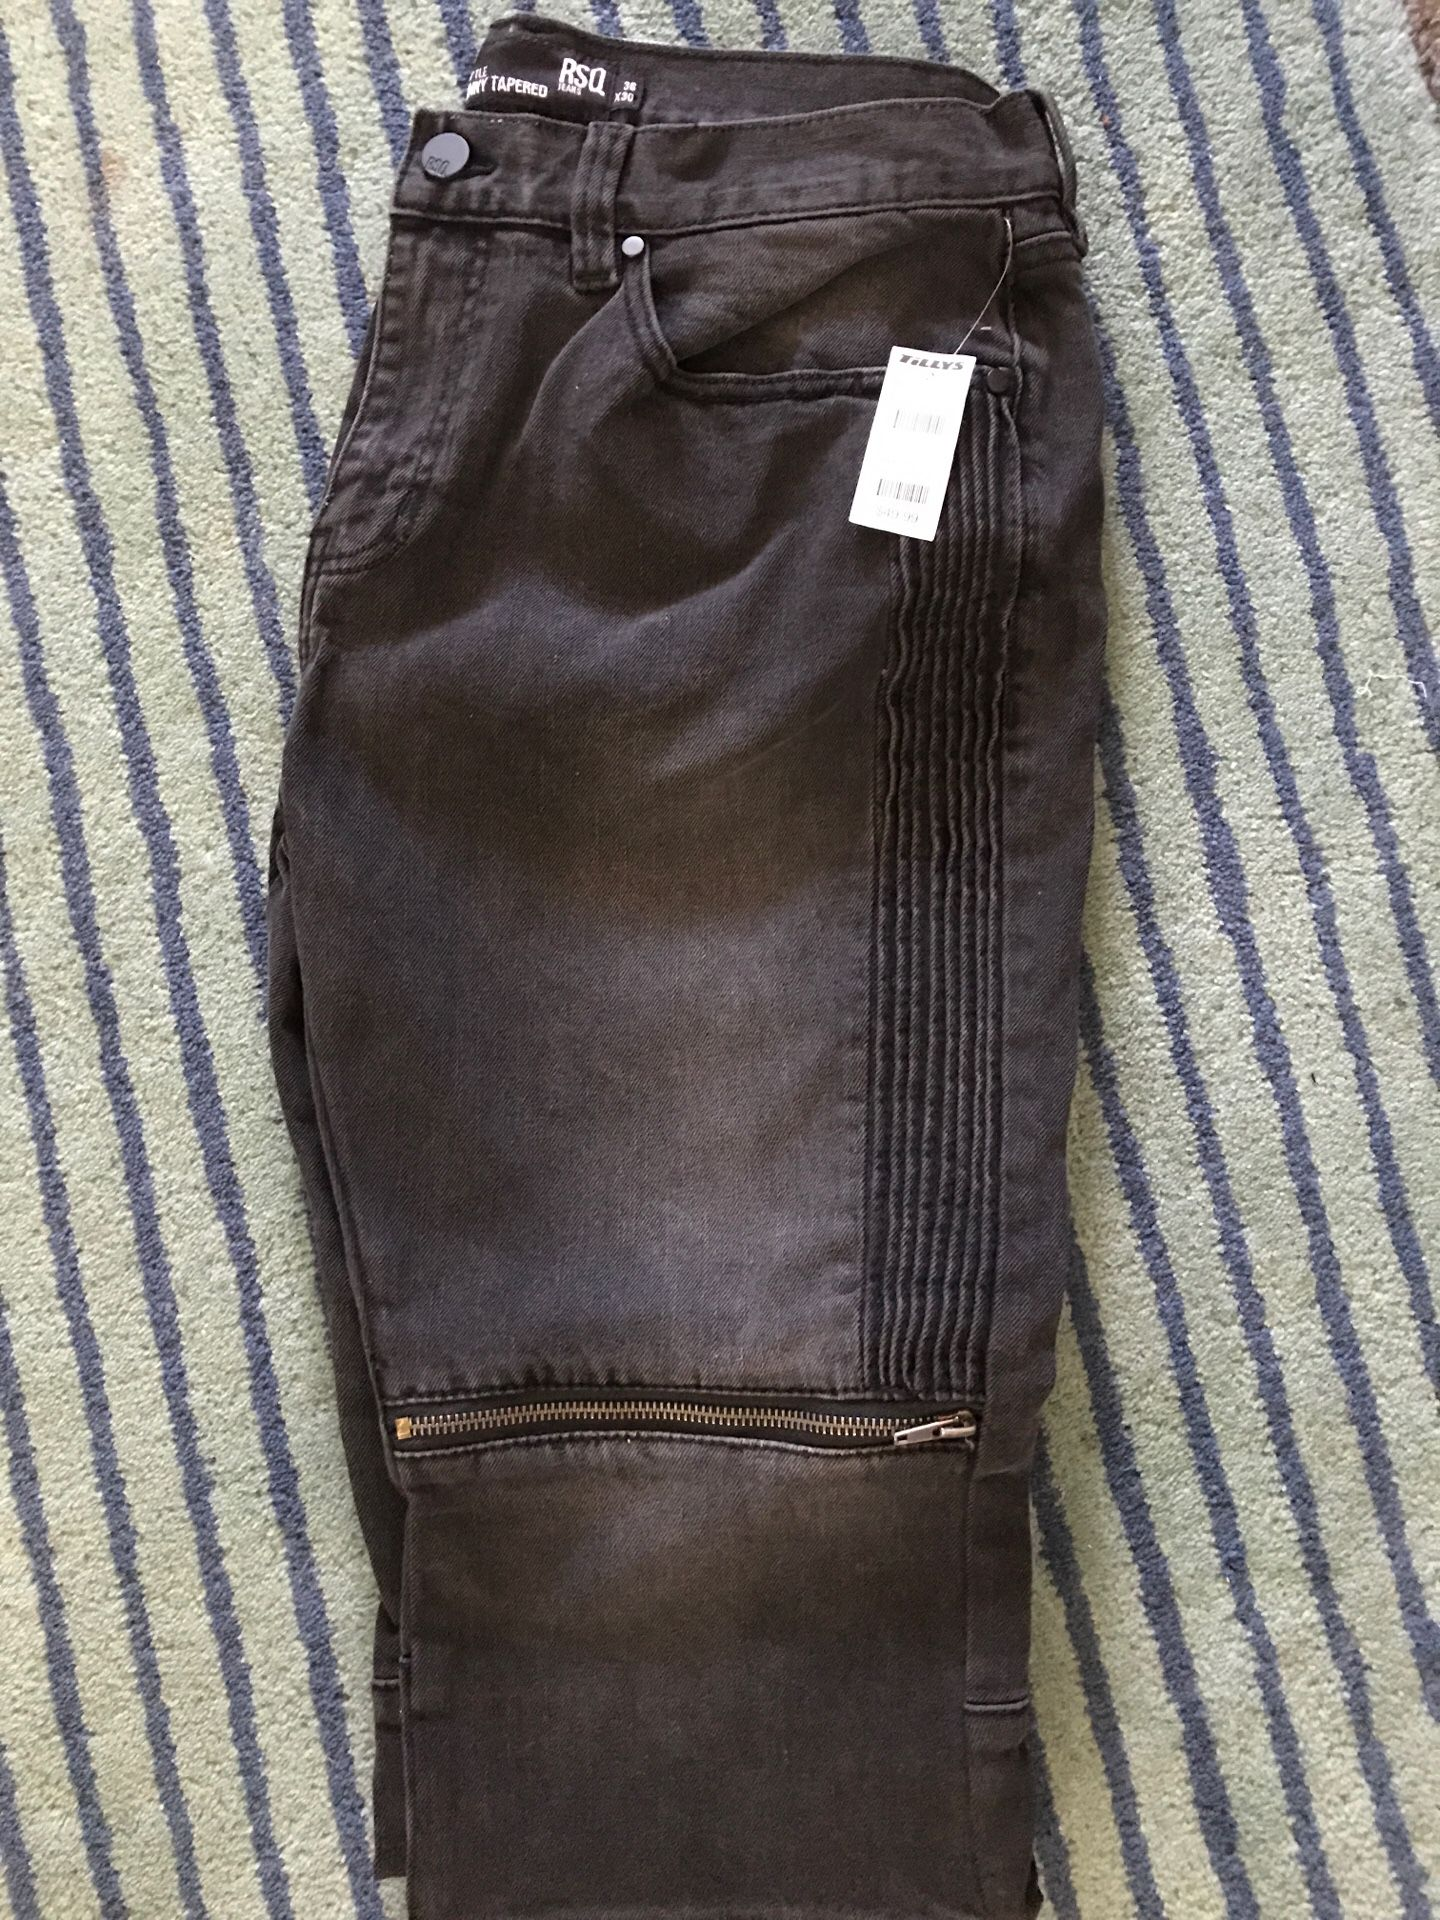 Men jeans 36x30 new with tags $30